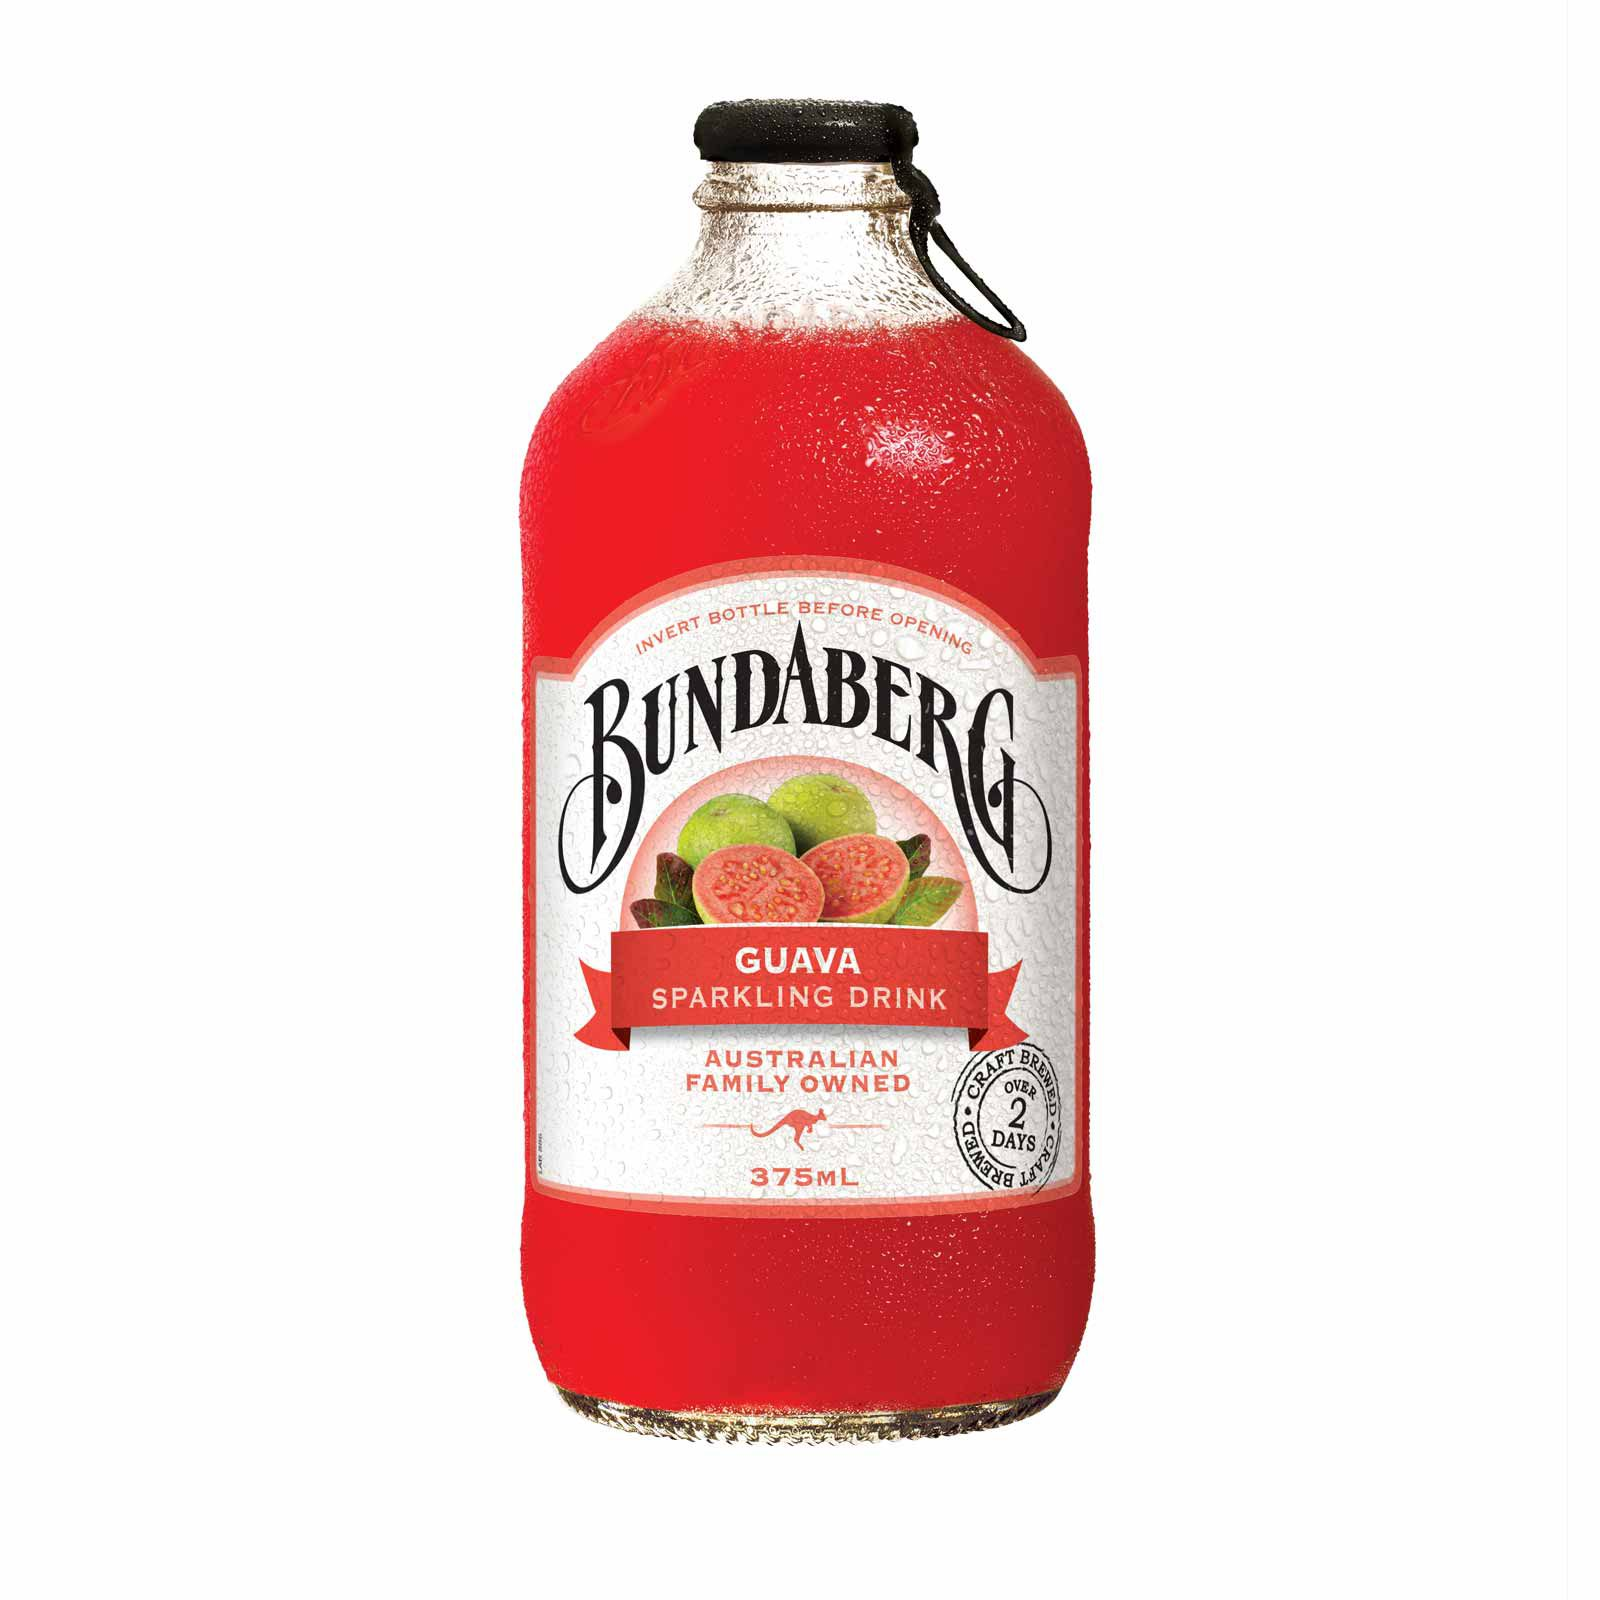 products-bundaberg-guava-a